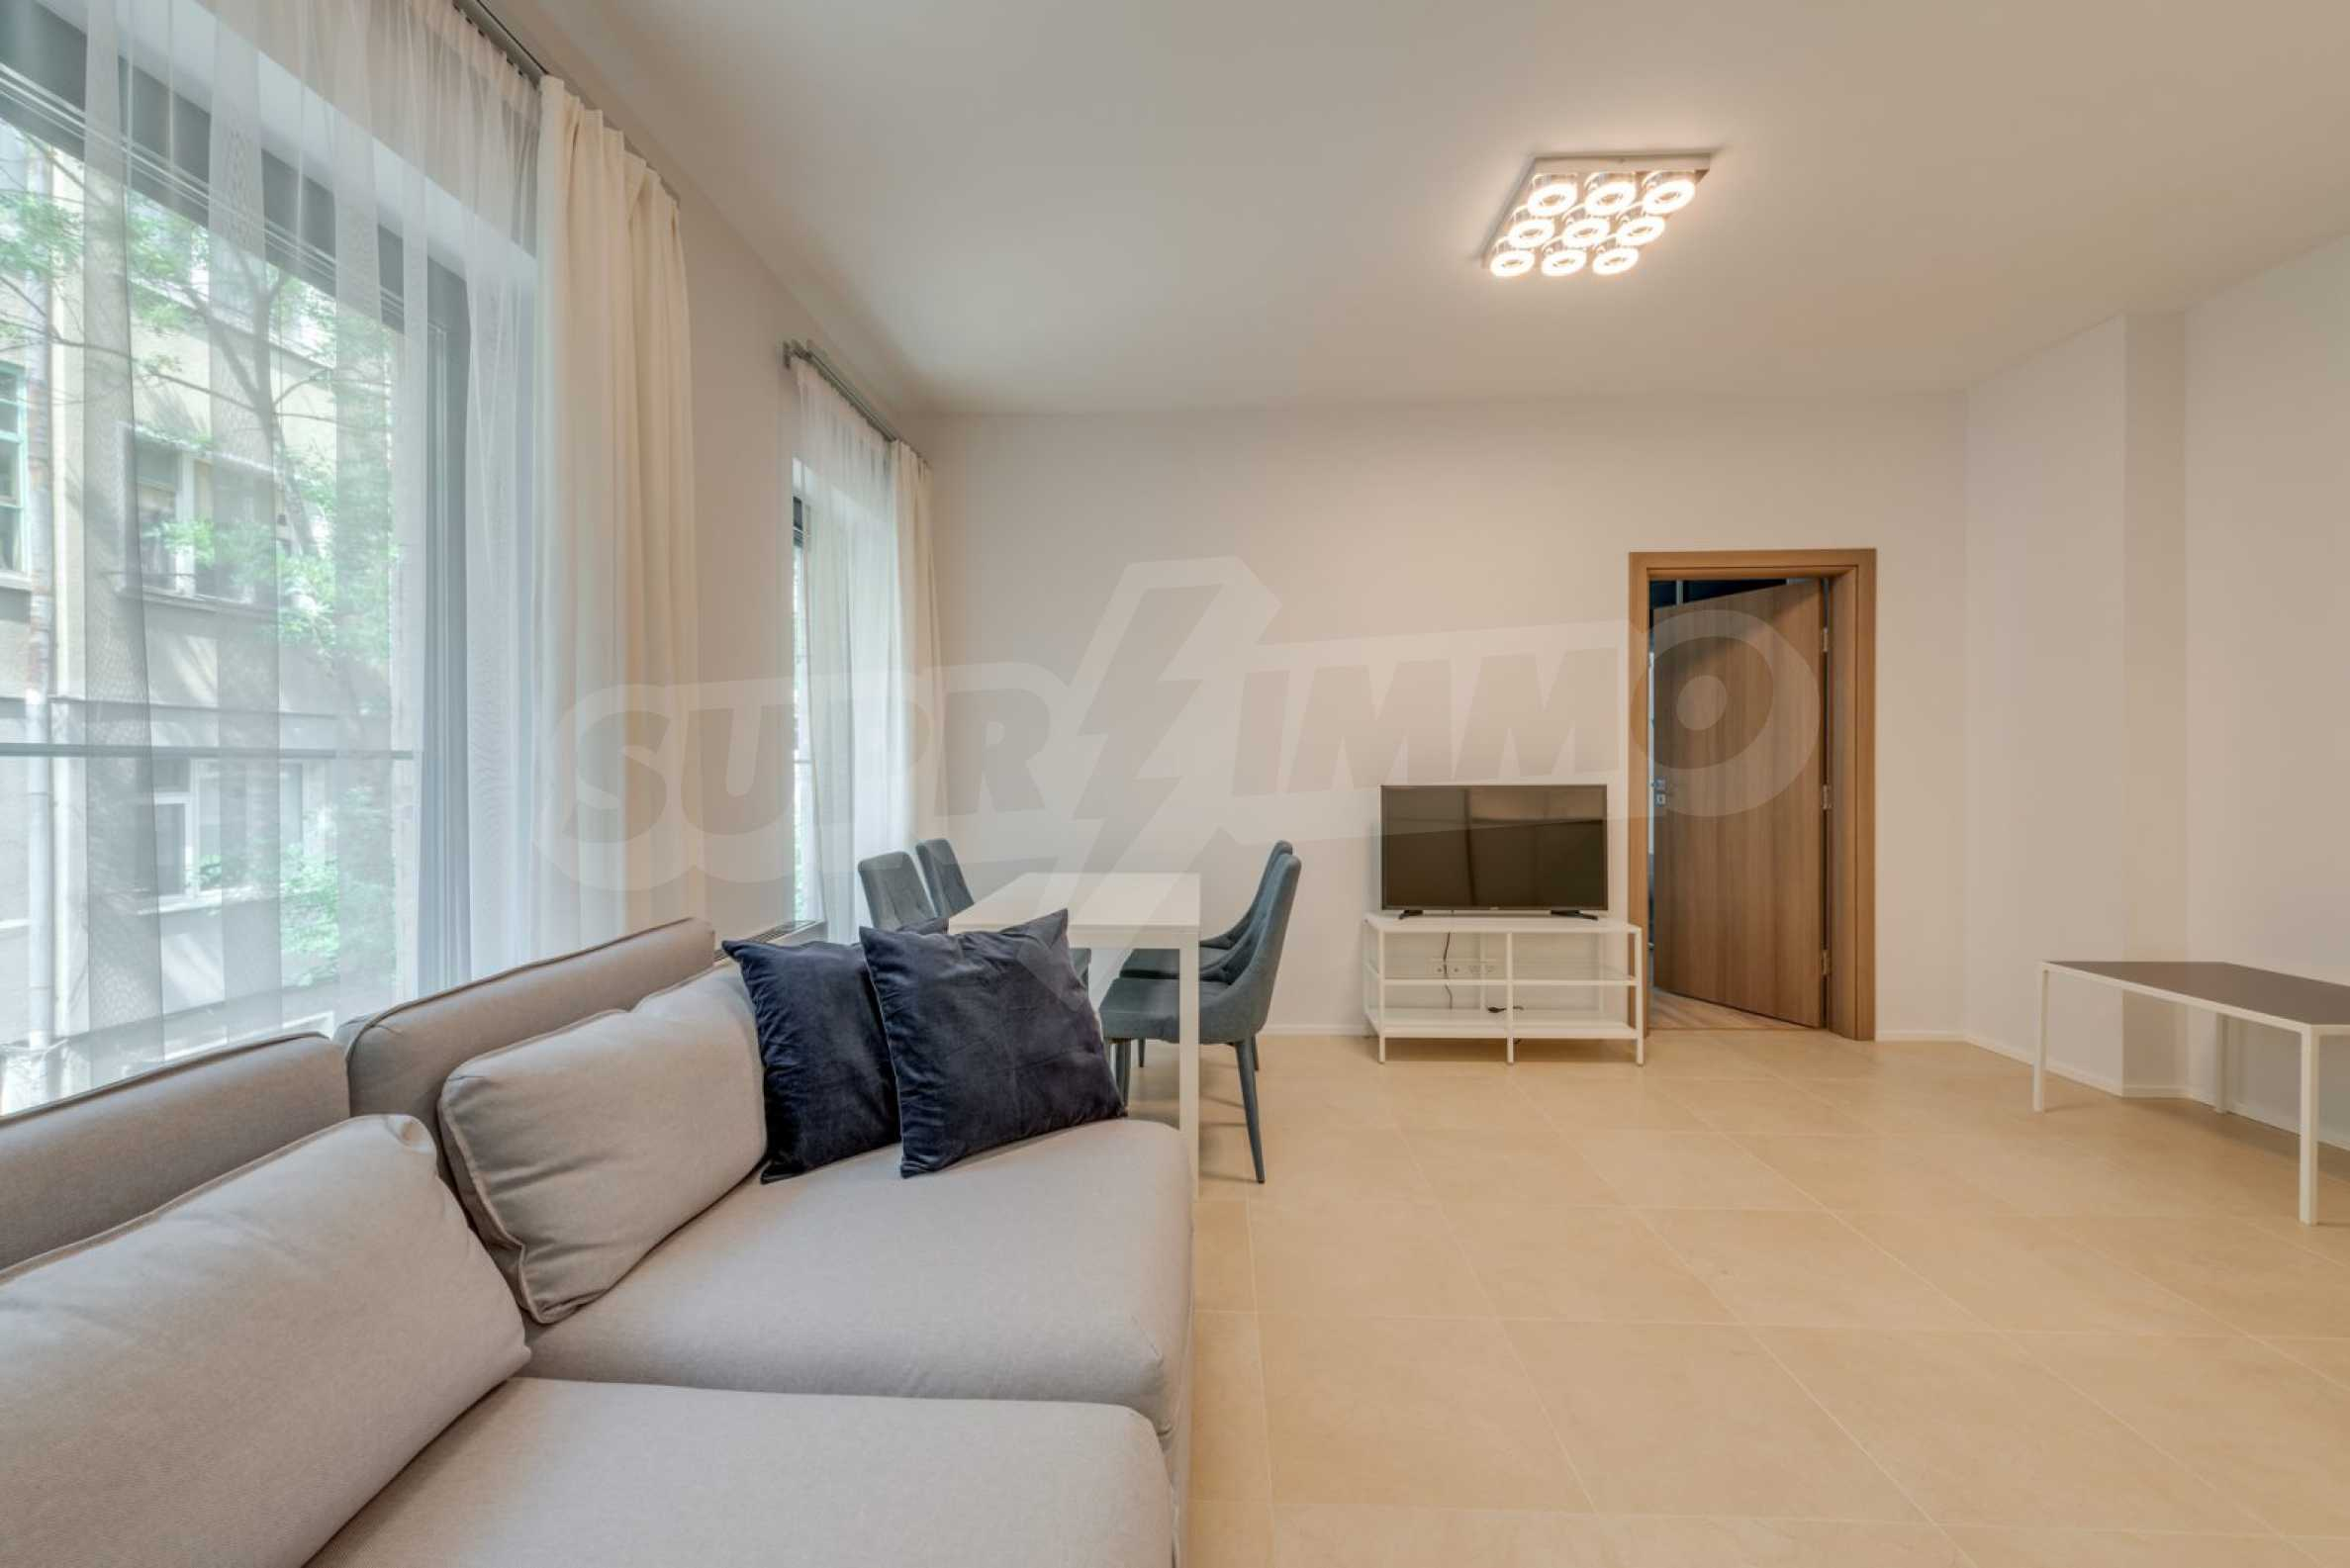 Stylish apartment in a boutique building near the National Palace of Culture 1